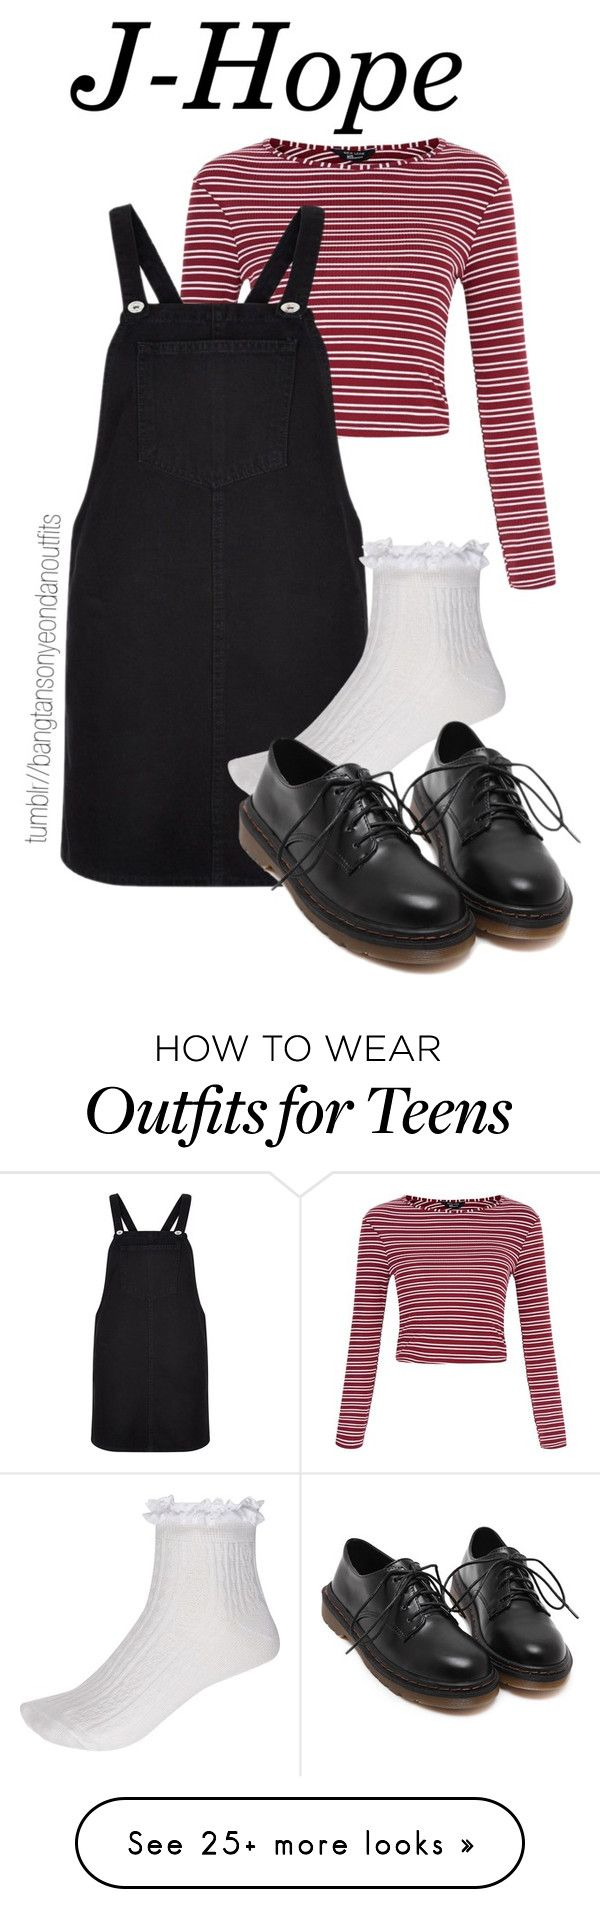 """JHOPE BIRTHDAY 4"" by bangtanoutfits on Polyvore featuring River Island, women's clothing, women, female, woman, misses, juniors, kpop, bts and BangtanBoys"